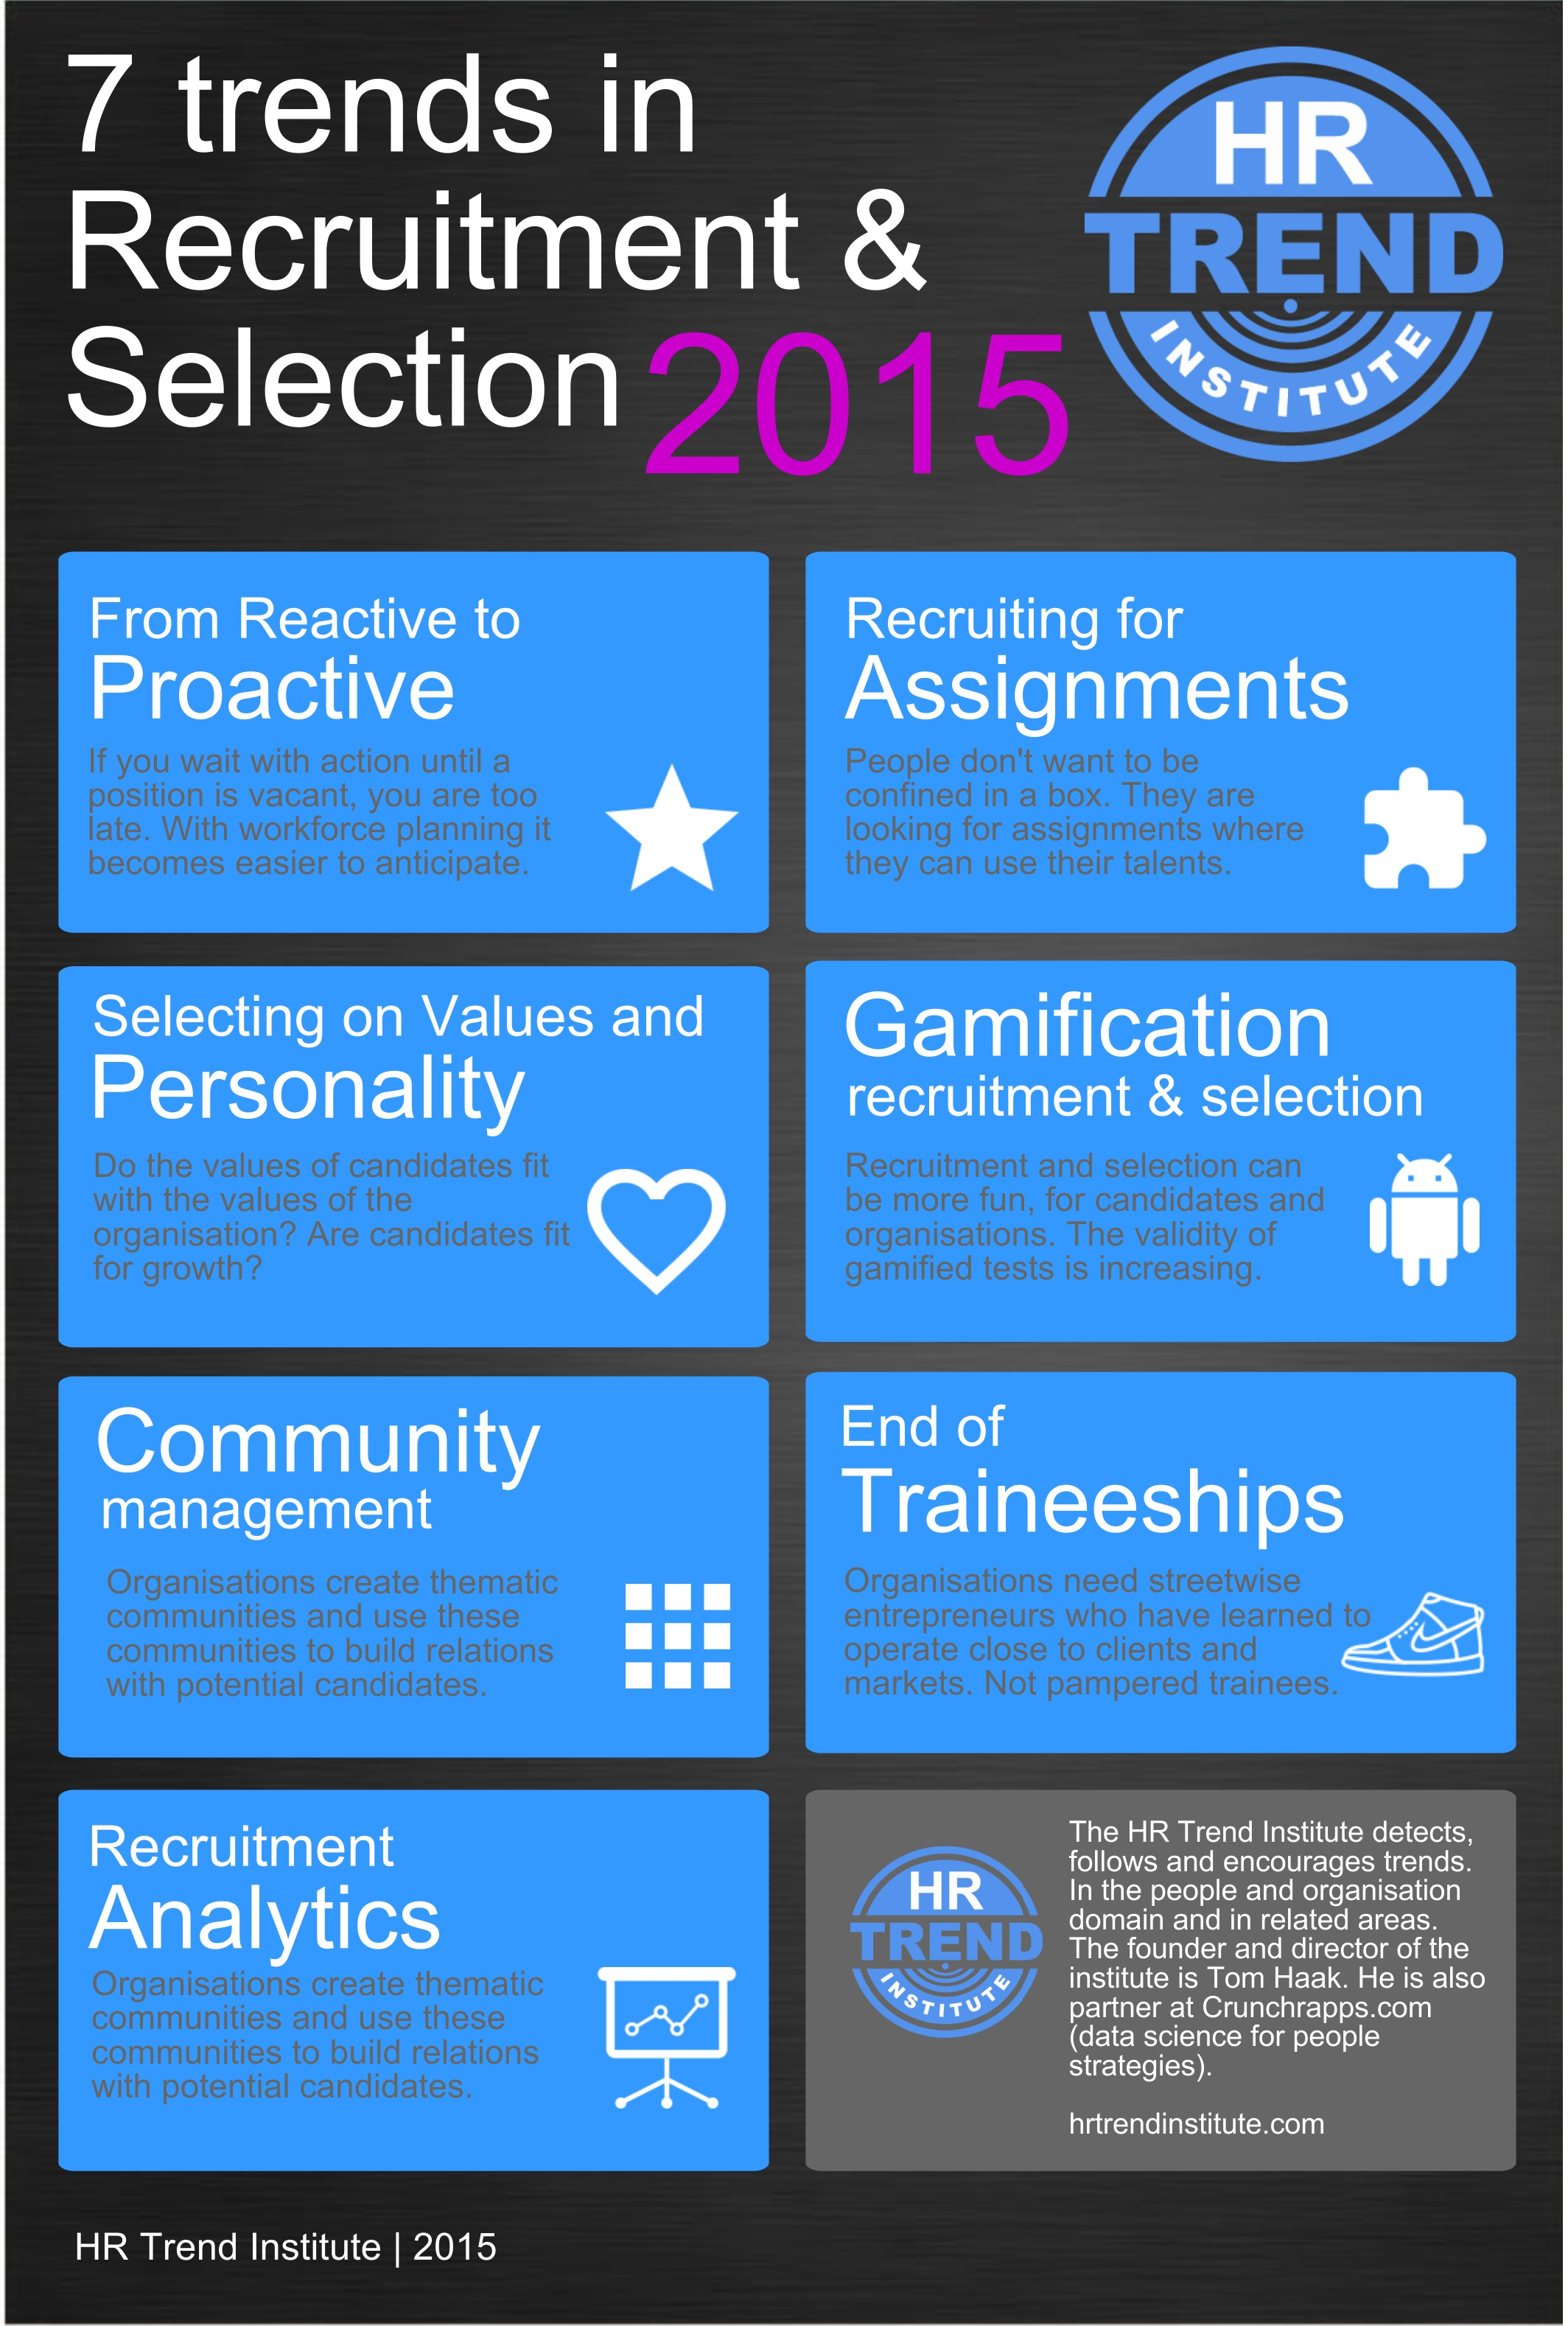 Trending In Fashion 2015: Trends In Recruitment And Selection: New Infographic